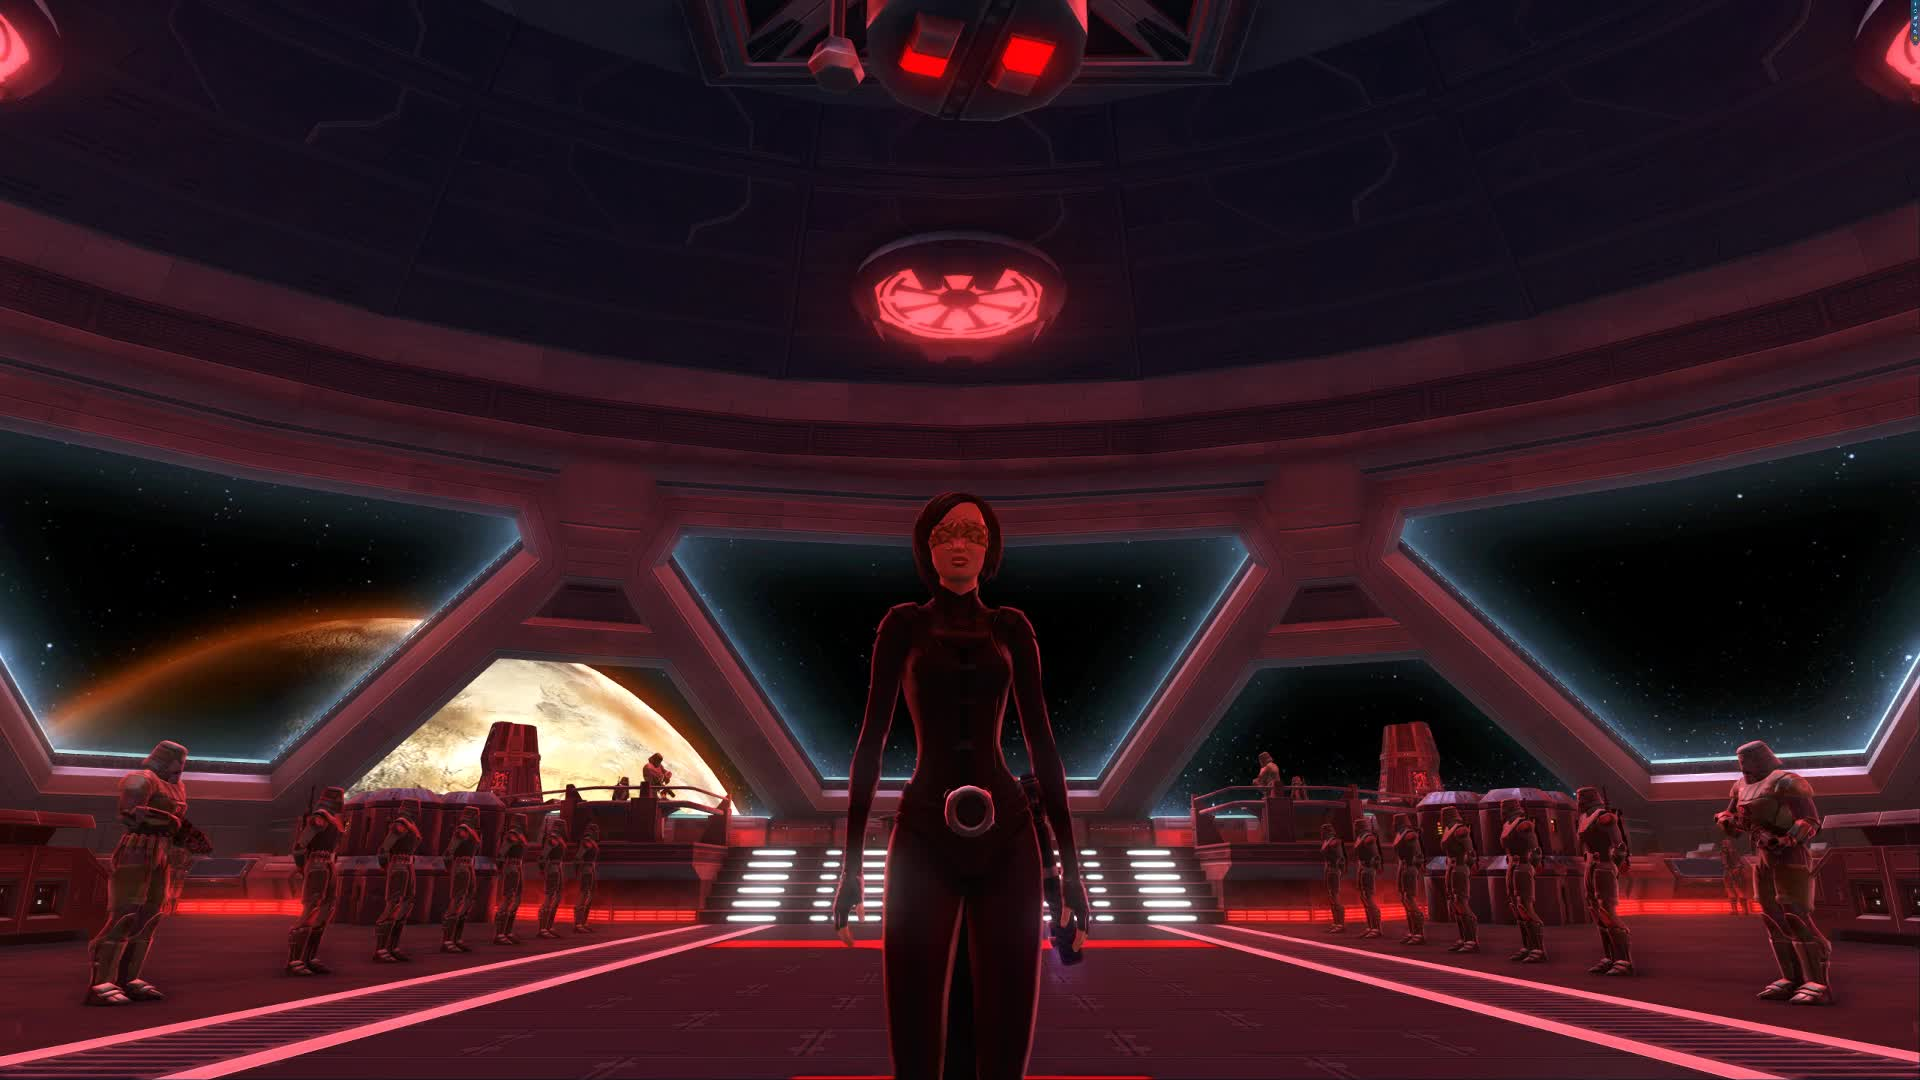 mmo, mmorpg, star wars, star wars the old republic, swtor, the old republic, tor, SWTOR Flex 2 GIFs